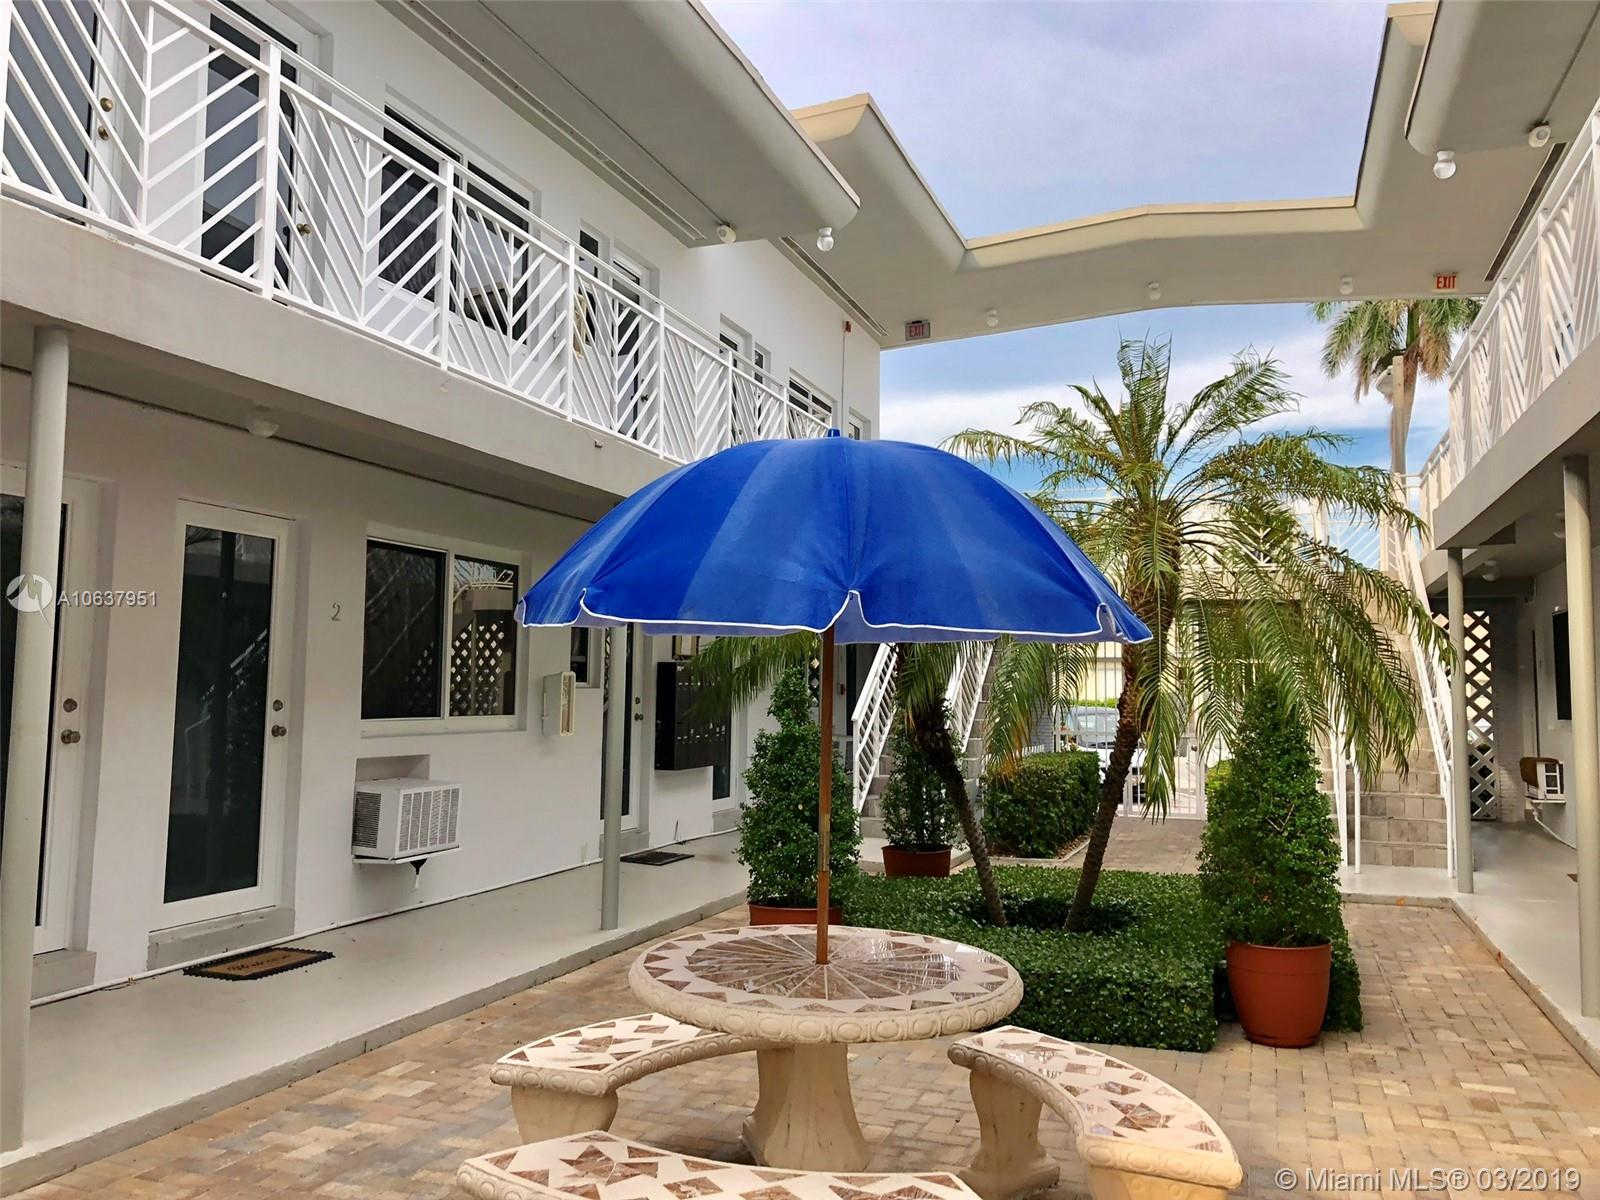 7430 Byron Ave #1a, Miami Beach, FL 33141 is now new to the market!